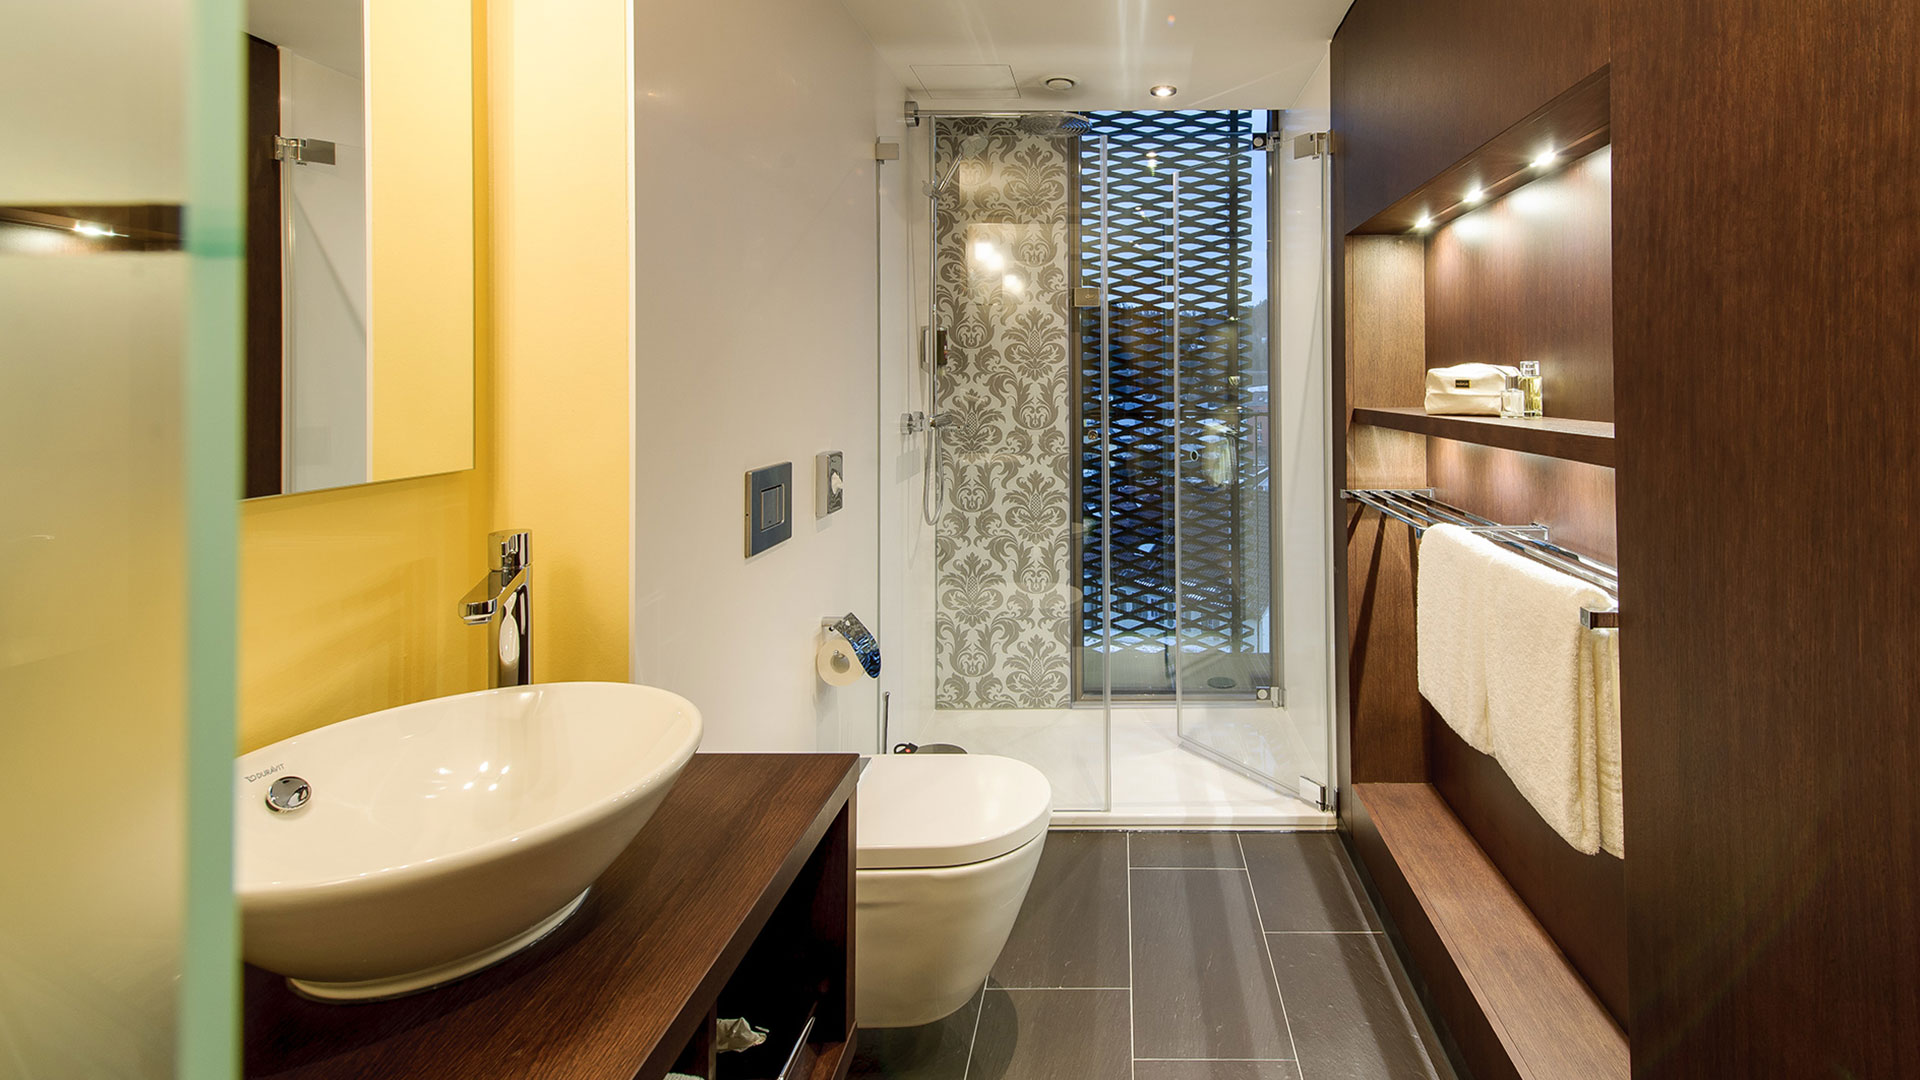 Photo of a bathroom - 01 - ibis Styles Nagold-Schwarzwald